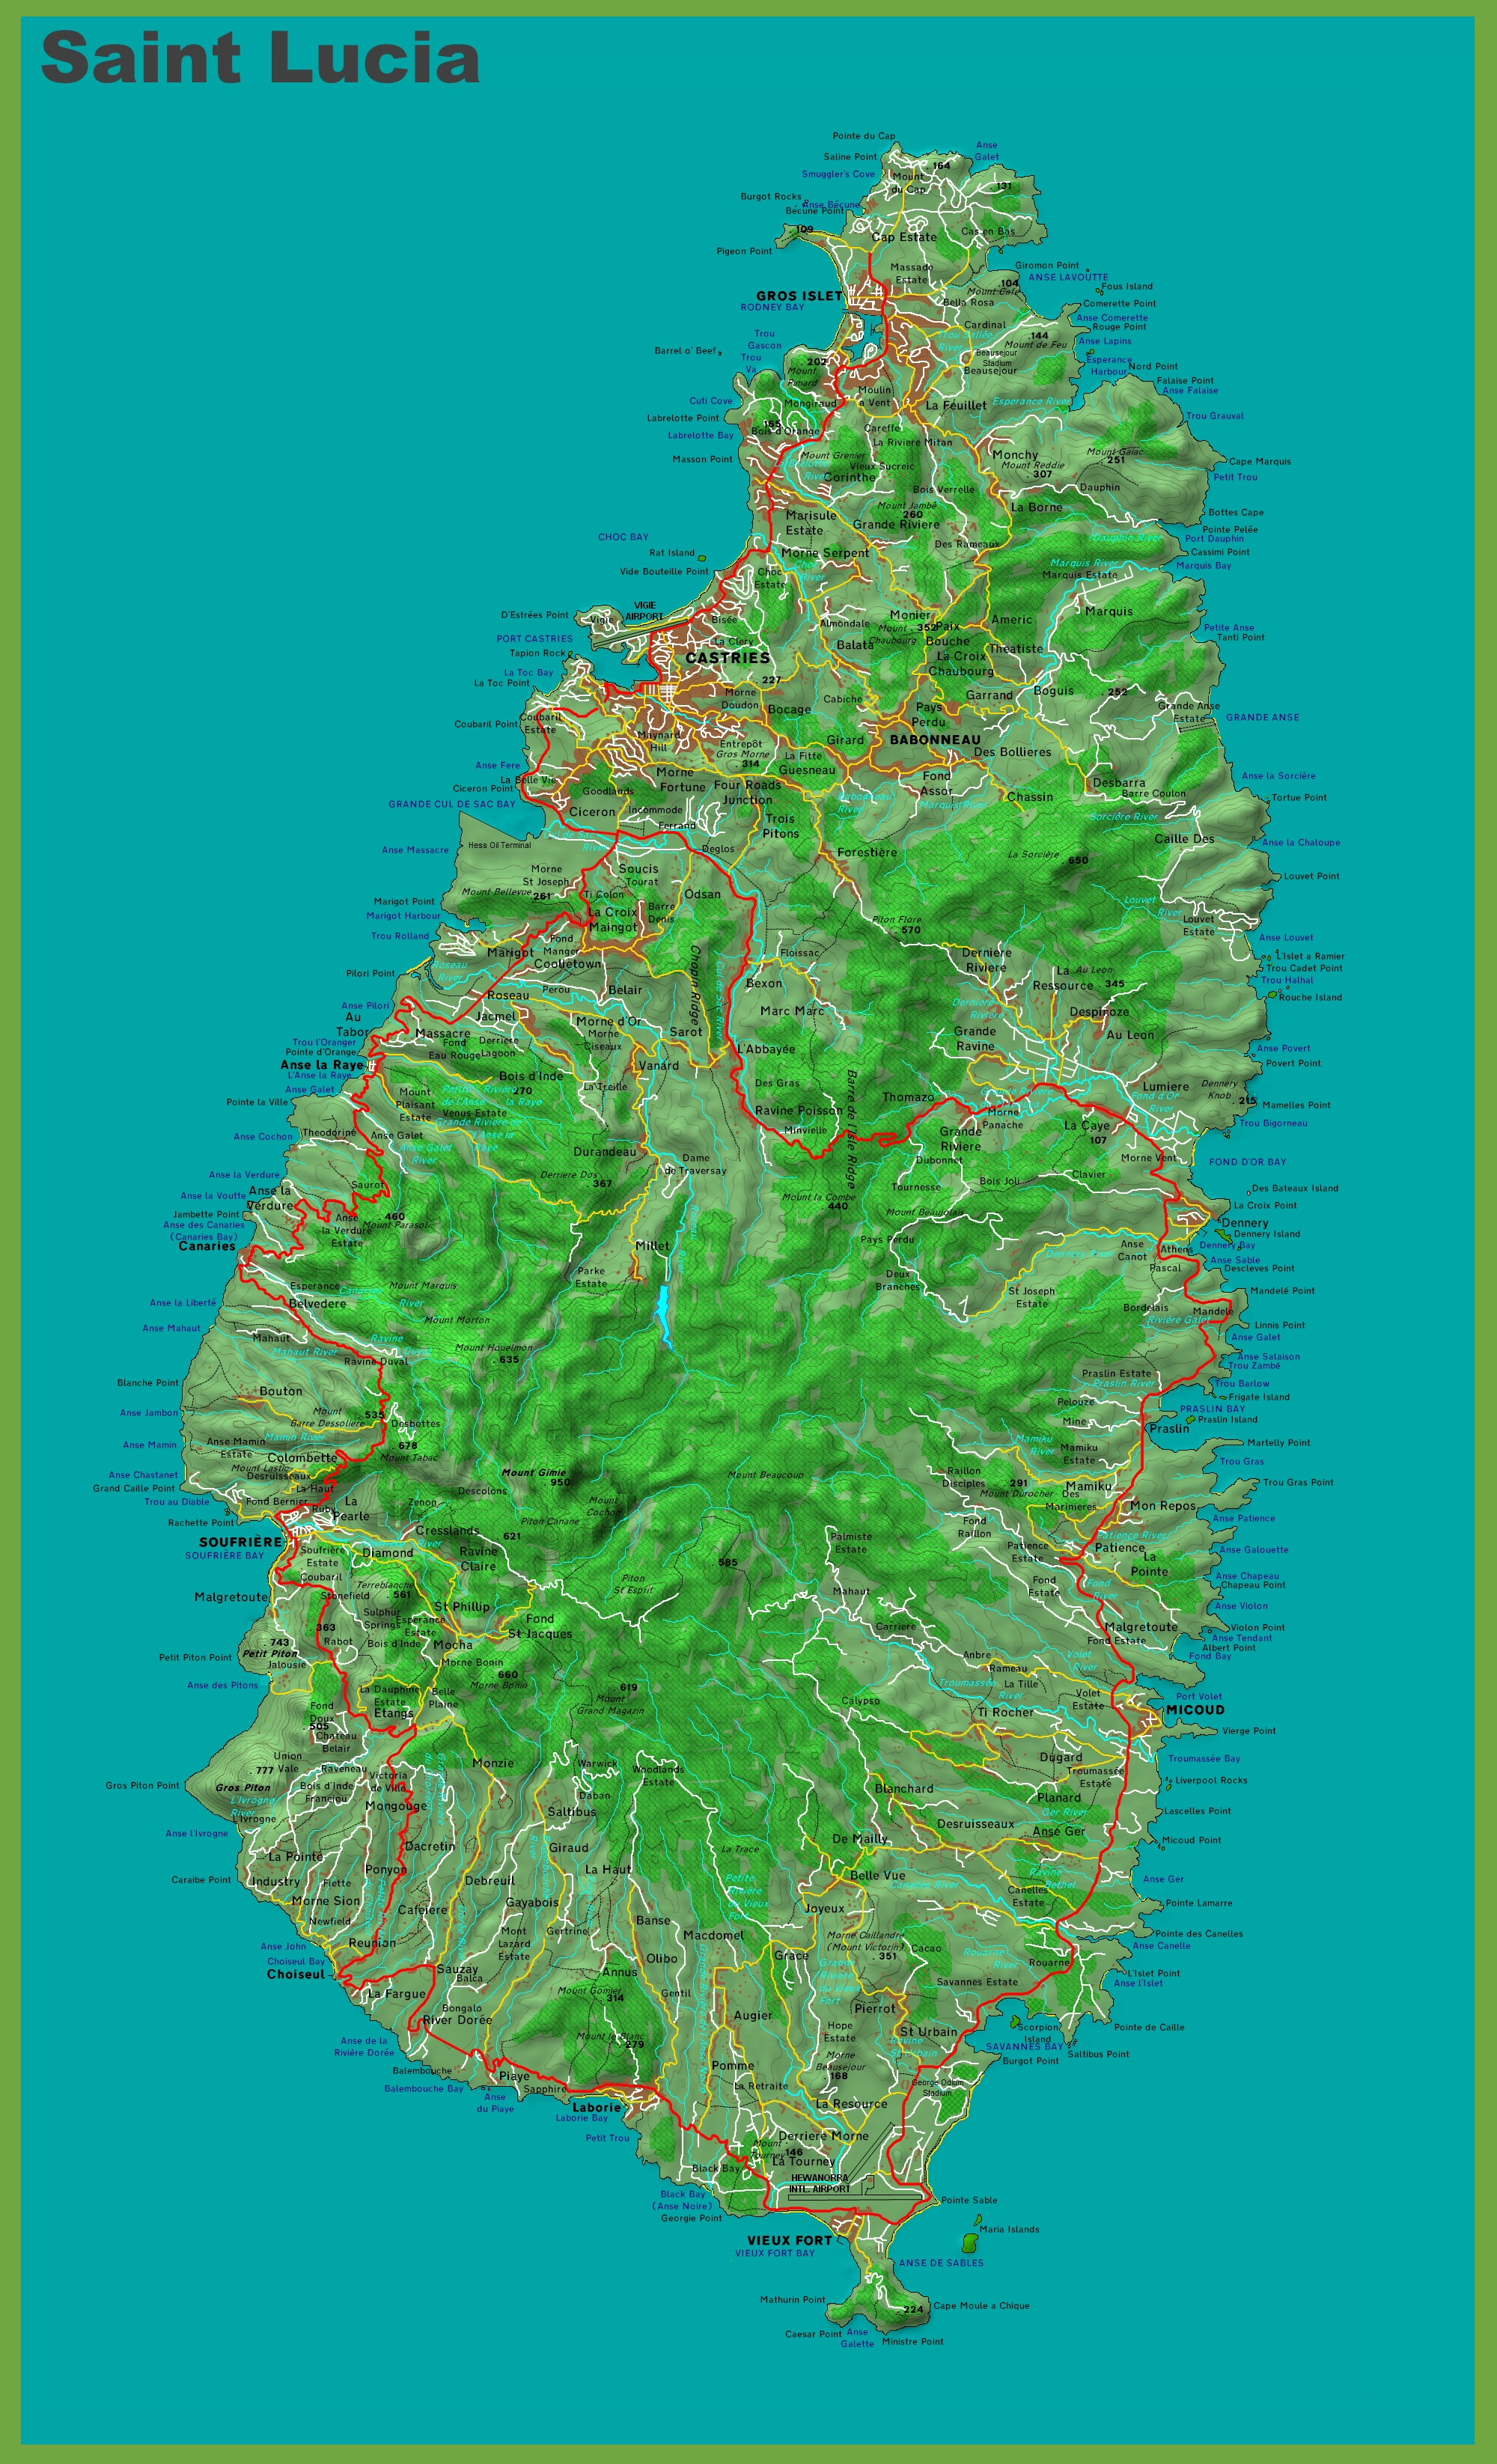 Topographic map of Saint Lucia